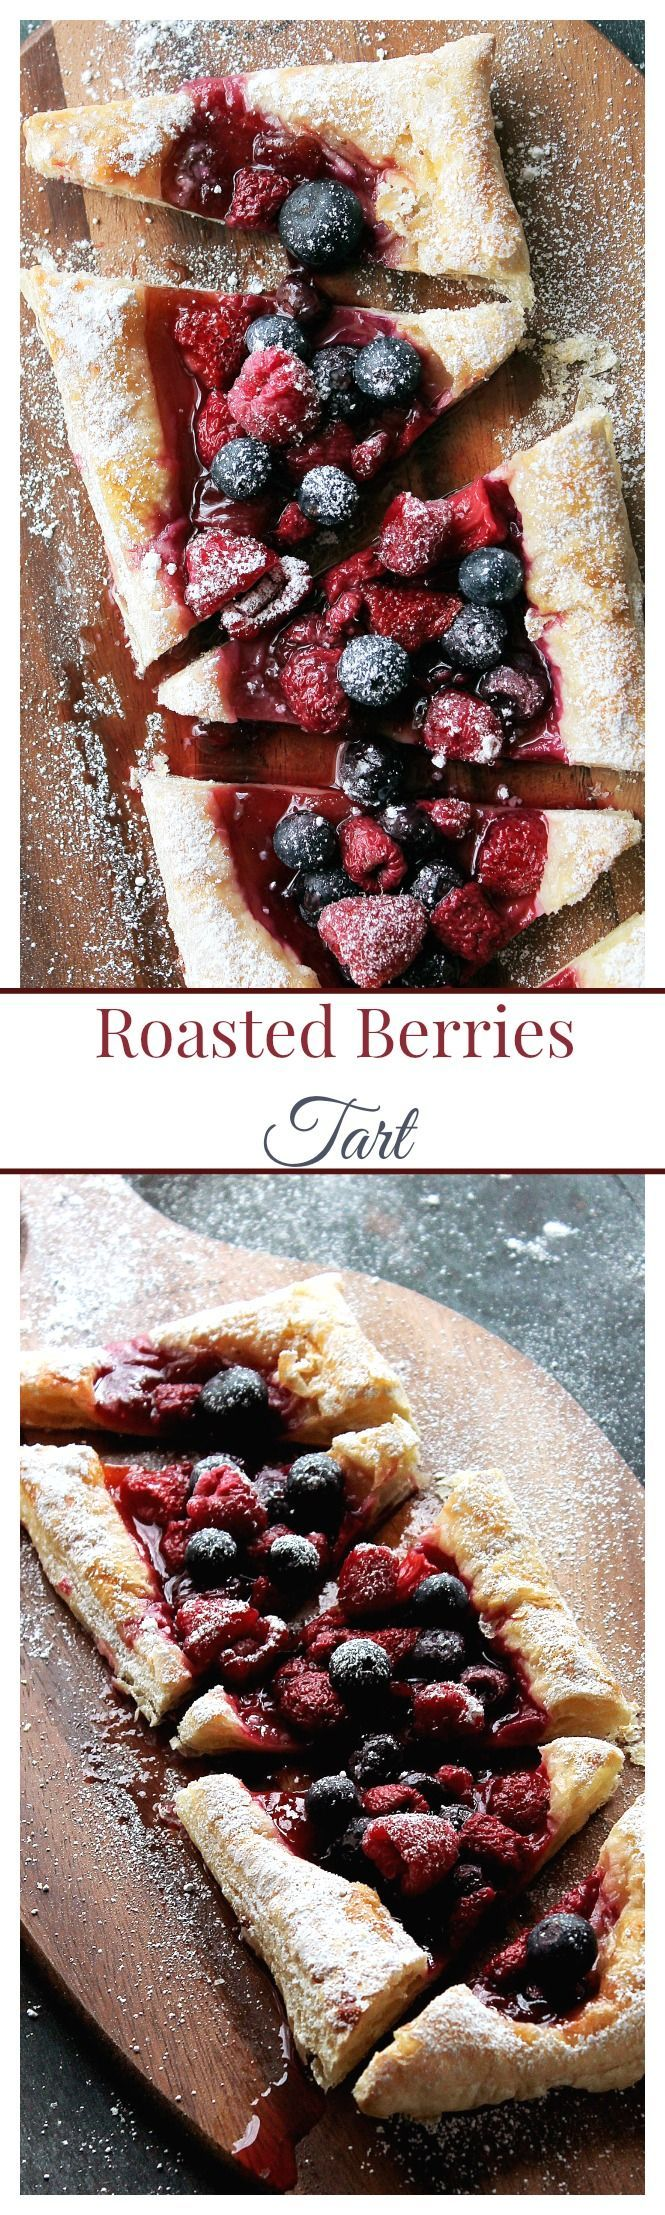 Roasted Berries Tart | www.diethood.com | This Roasted Berries Tart, made with puff pastry and fresh berries, is sweet, tart, impressive, and best of all, quick and easy! | #valentines_day #dessert